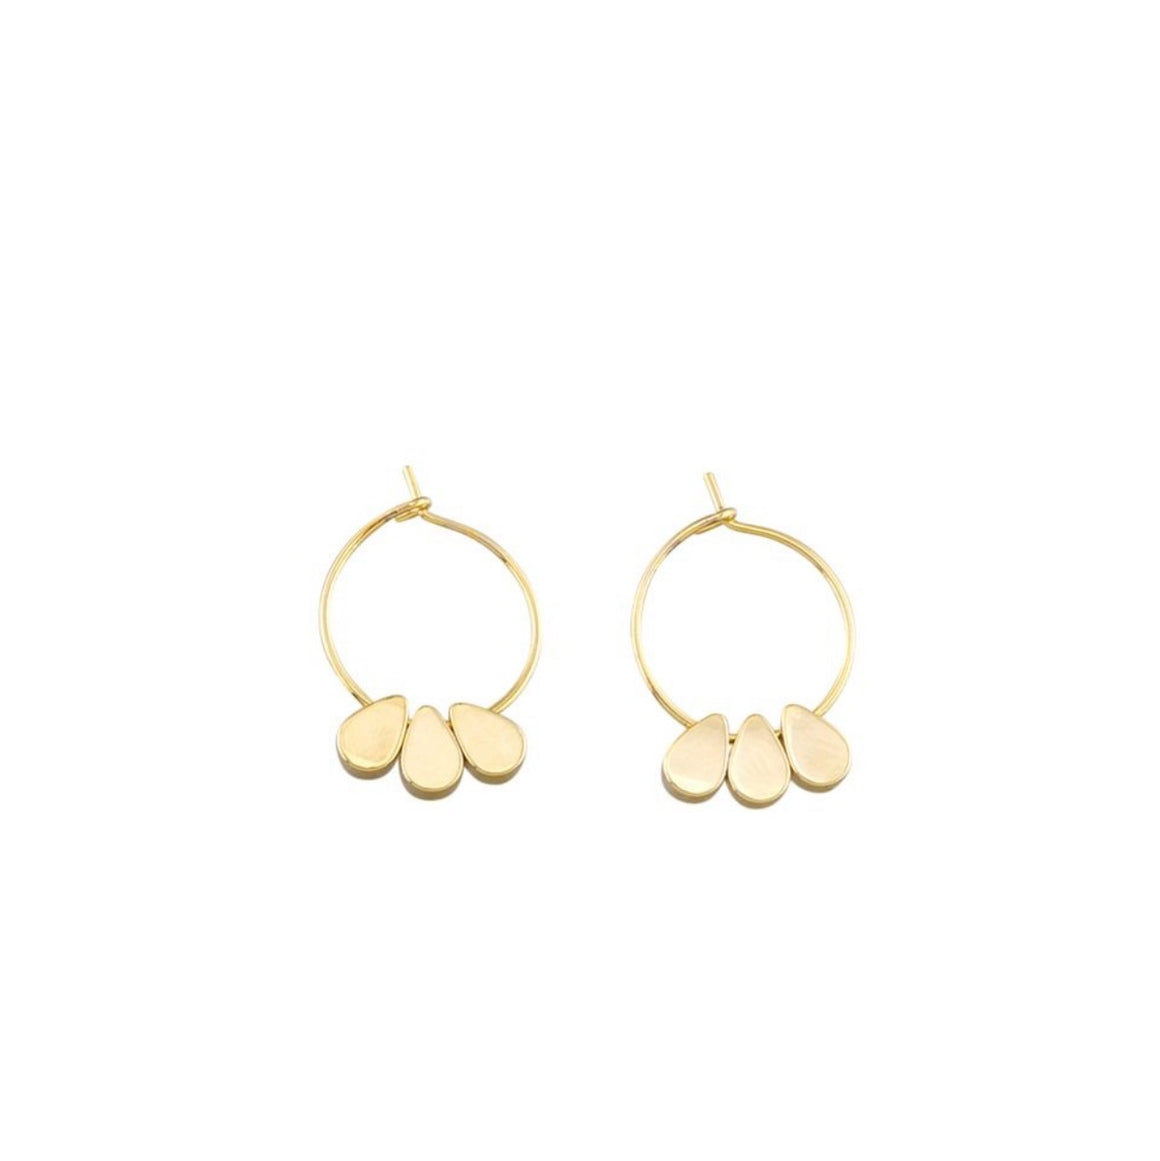 Earring Trio Tear Mini Hoops